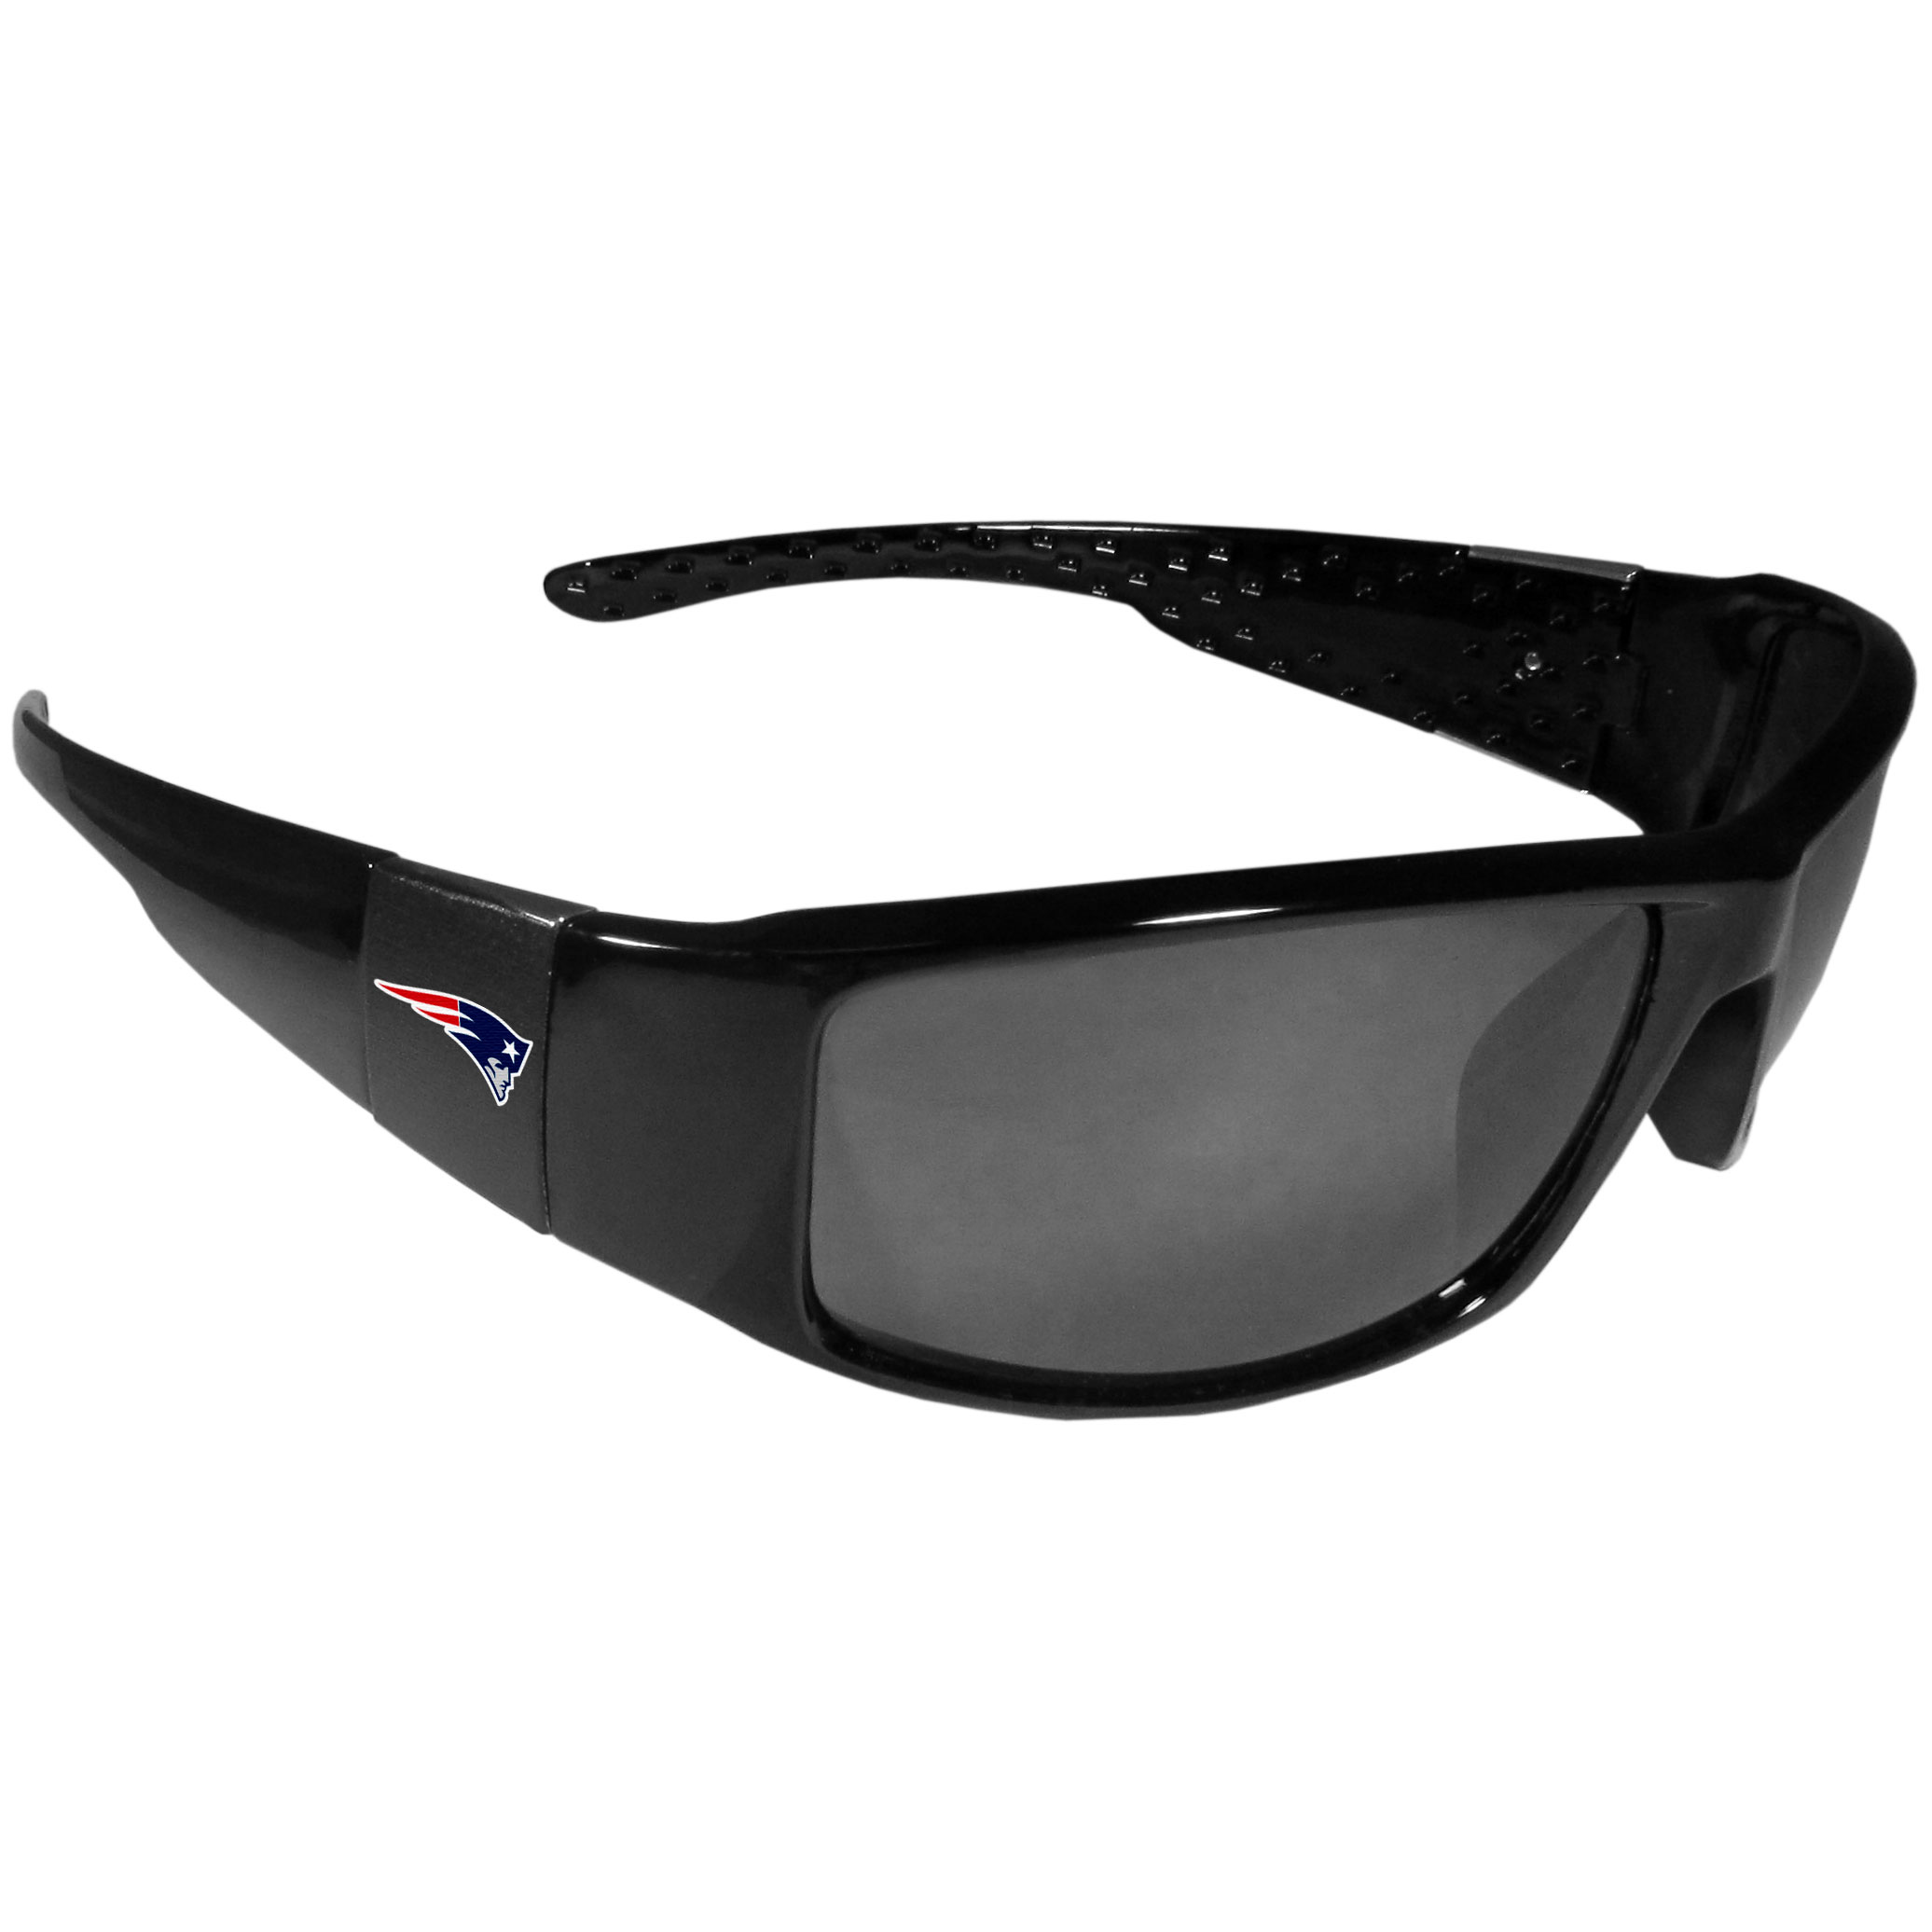 New England Patriots Black Wrap Sunglasses - These designer inspired frames have a sleek look in all black with  New England Patriots shields on each arm with a printed logo. The shades are perfect for any outdoor activity like; golfing, driving, hiking, fishing or cheering on the team at a tailgating event or at a home game day BBQ with a lens rating of 100% UVA/UVB for maximum UV protection. The high-quality frames are as durable as they are fashionable and with their classic look they are the perfect fan accessory that can be worn everyday for every occasion.